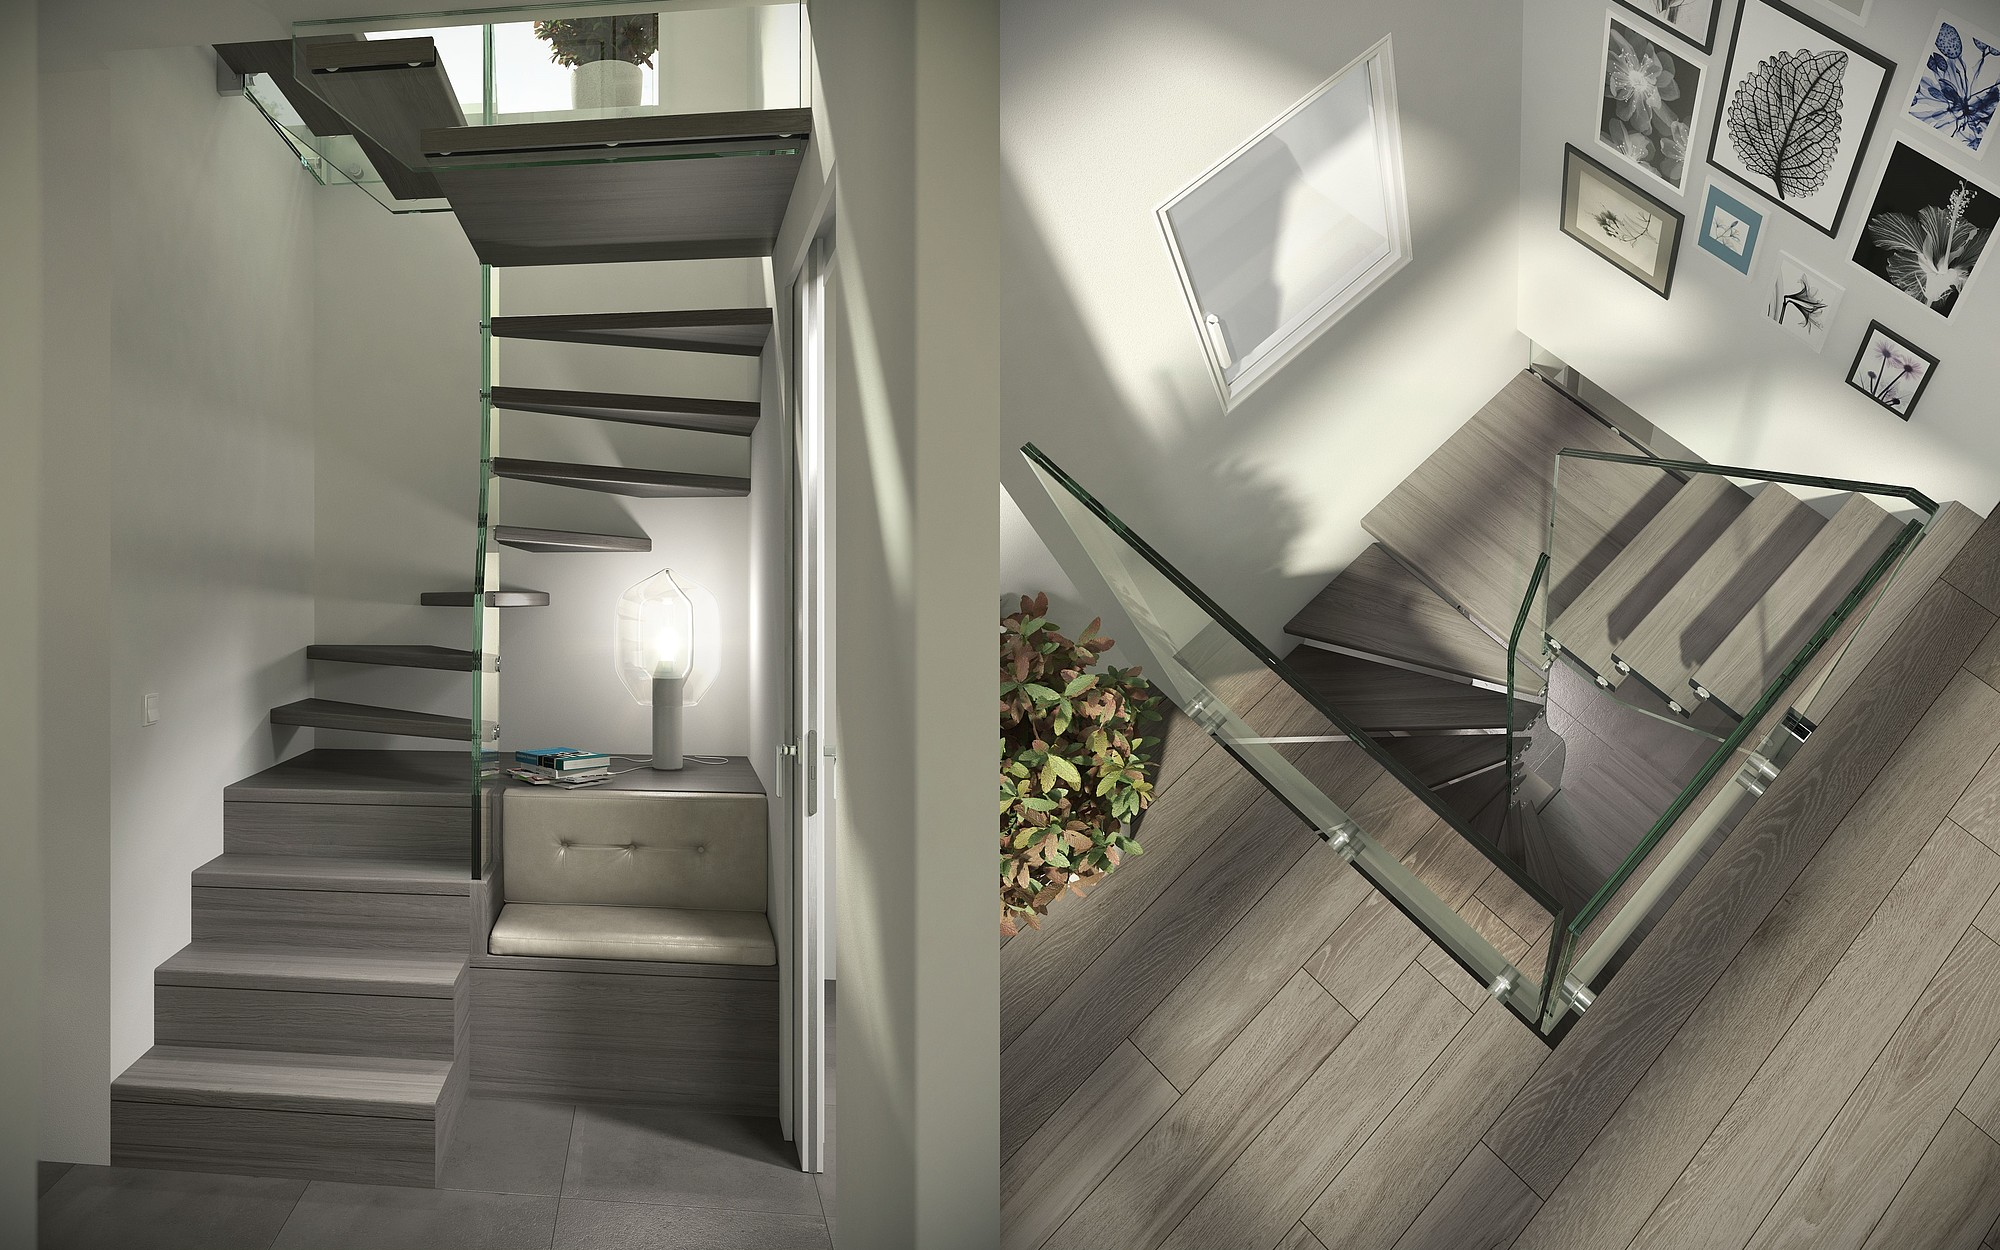 csm glass stair for small space with seating area ef06051da5 - 48+ Stair Design In Small House  Pics